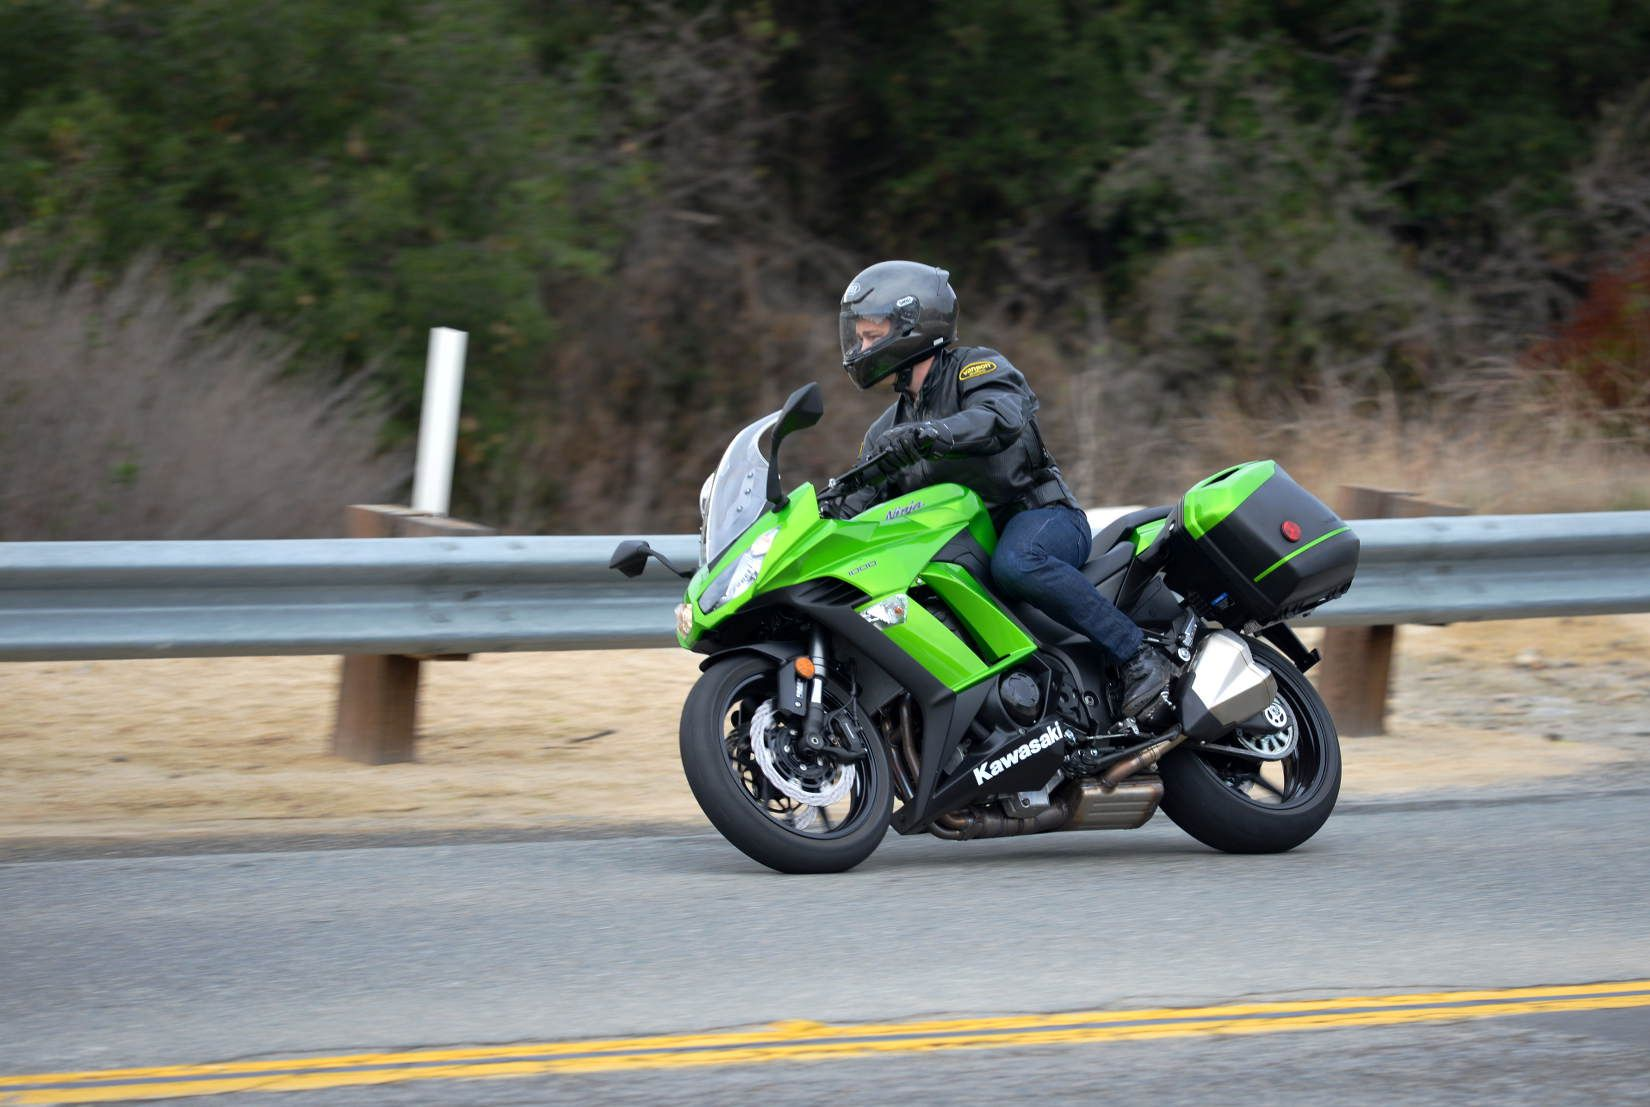 2011 Kawasaki Ninja 1000 First Ride